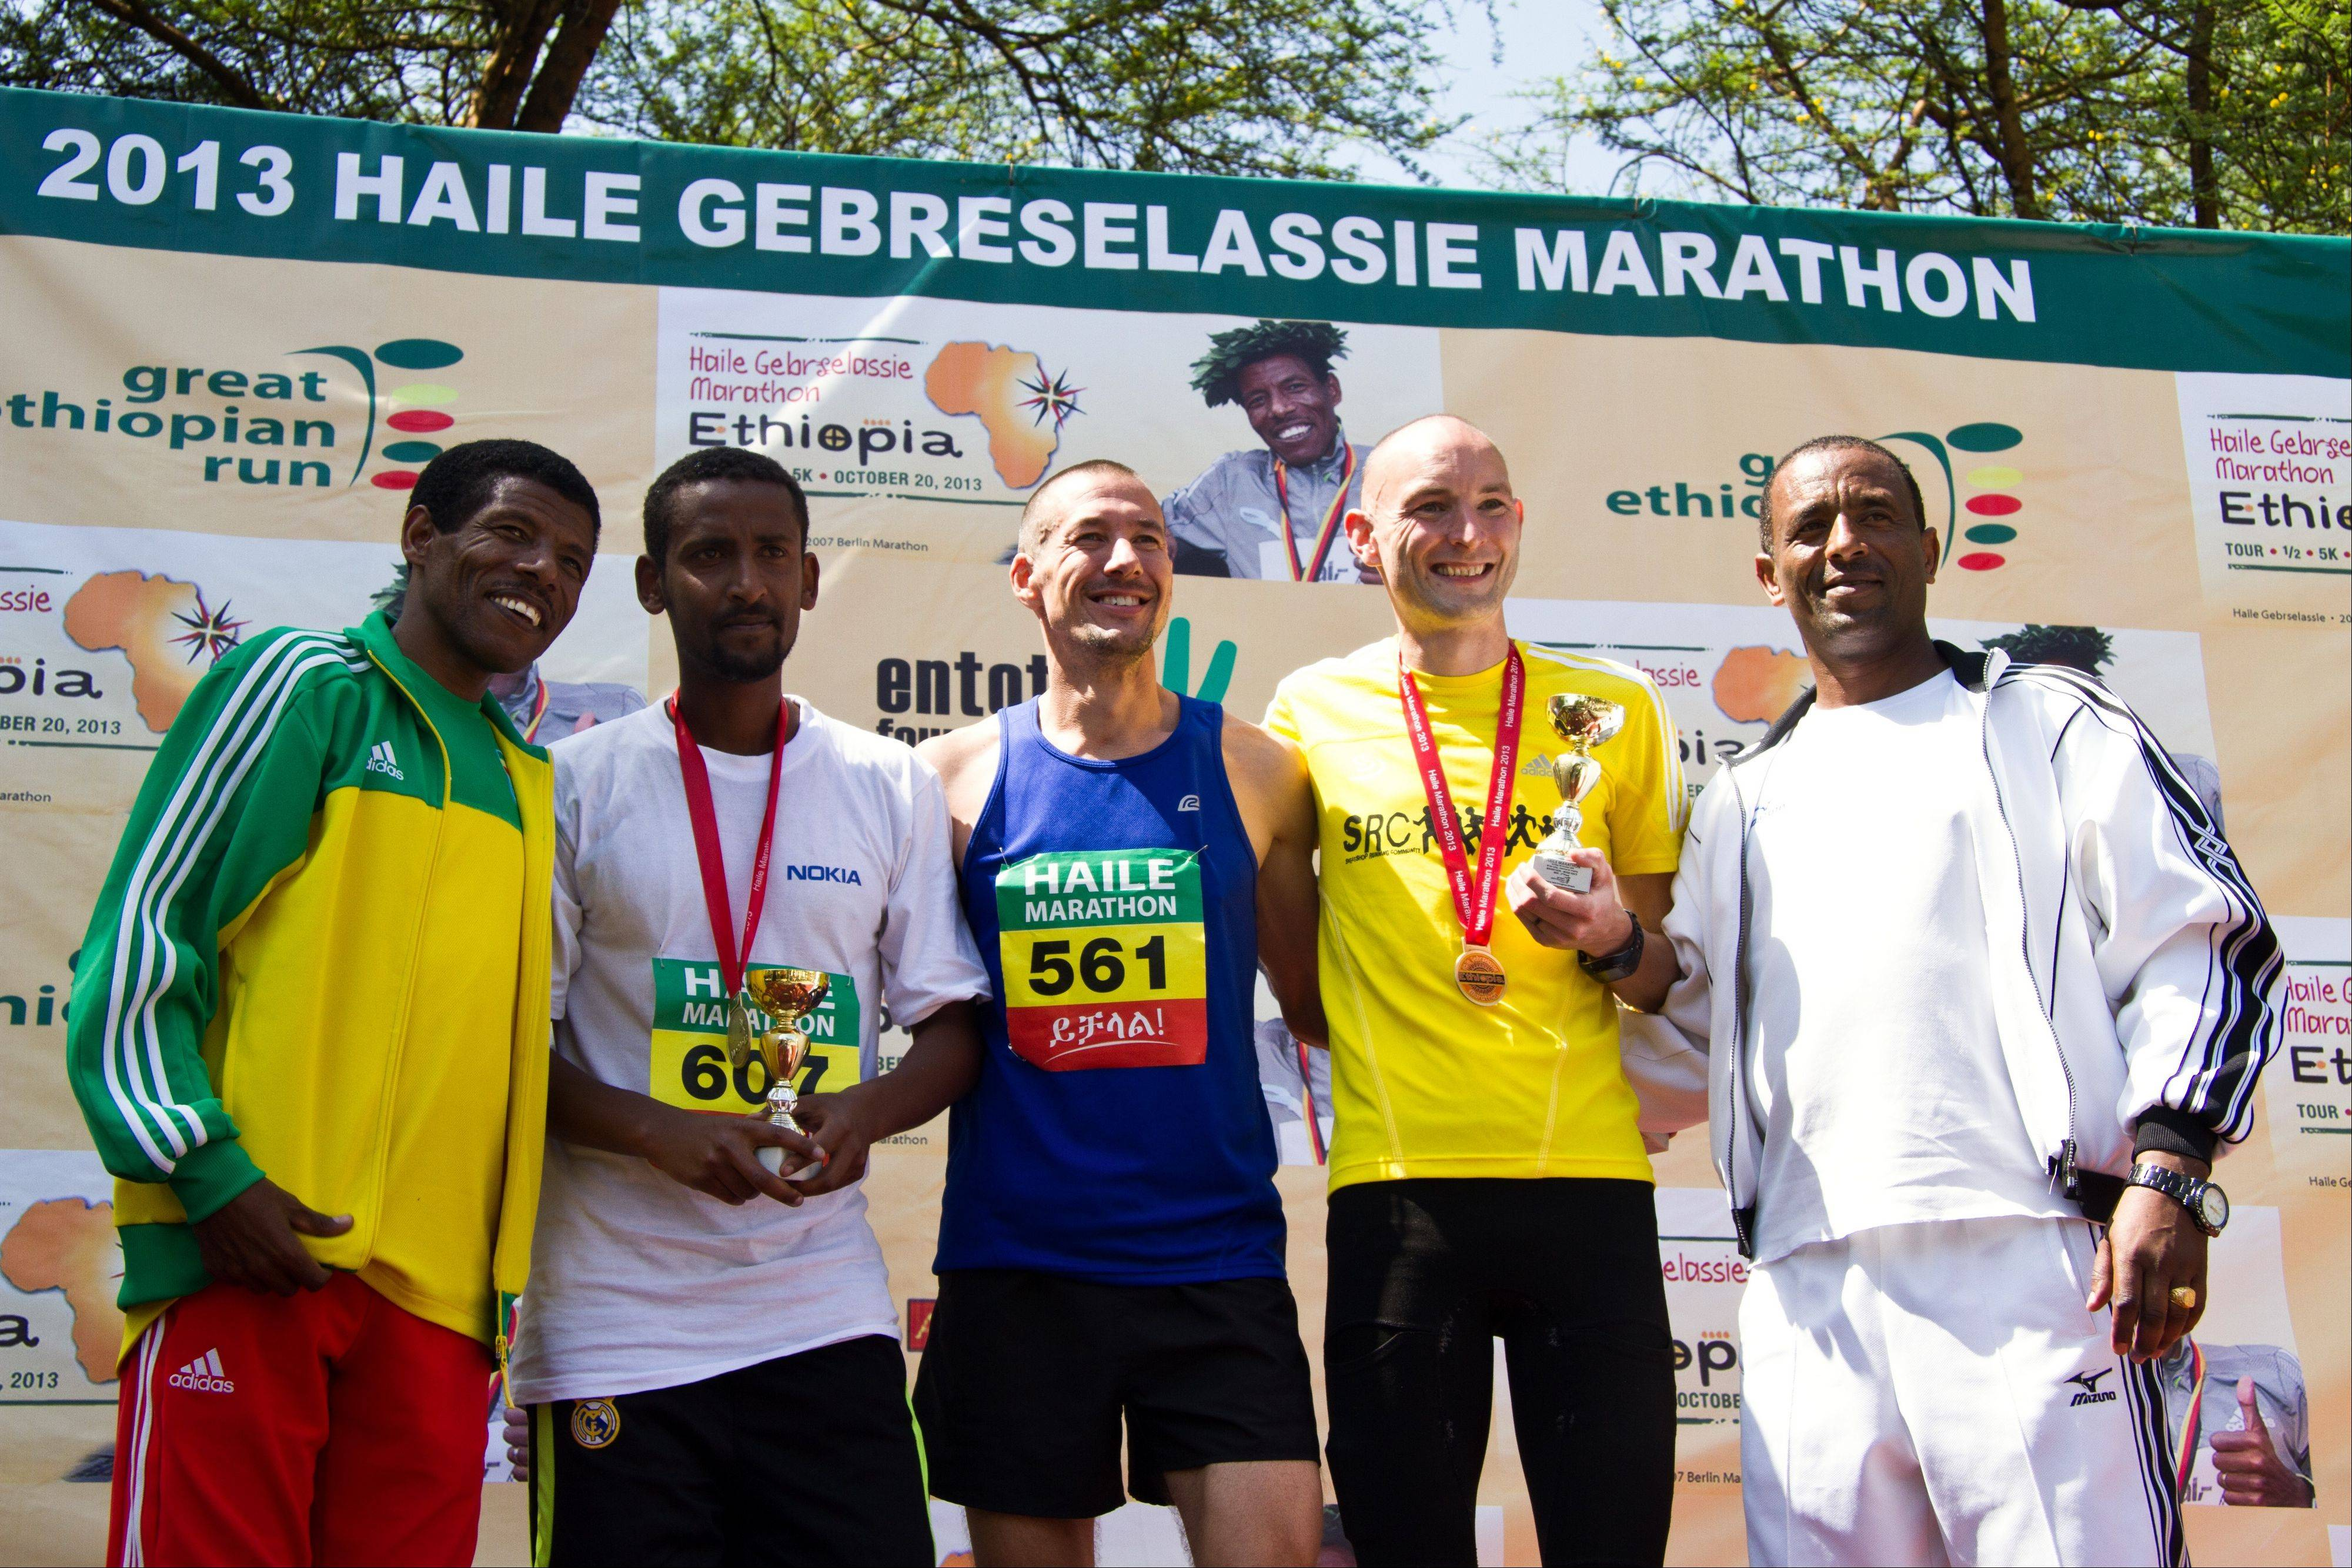 Jason Dolan, center, of Inverness, poses for photos after winning first place in the 2013 Haile Gebreselassie Marathon Oct. 20 in southern Ethiopia. The marathon had two divisions: one for elite Ethiopian runners, and one for foreign runners called the International Mass Marathon. Dolan won in the latter division. Pictured from left to right are race namesake Gebrselassie, third place finisher Esayas Yayneshet, Dolan, second place winner Simon Newton from Great Britain, and Ethiopian marathoner Belay Welasha. Not pictured is Megan McClowry, of Naperville, who won the marathon�s women�s division.